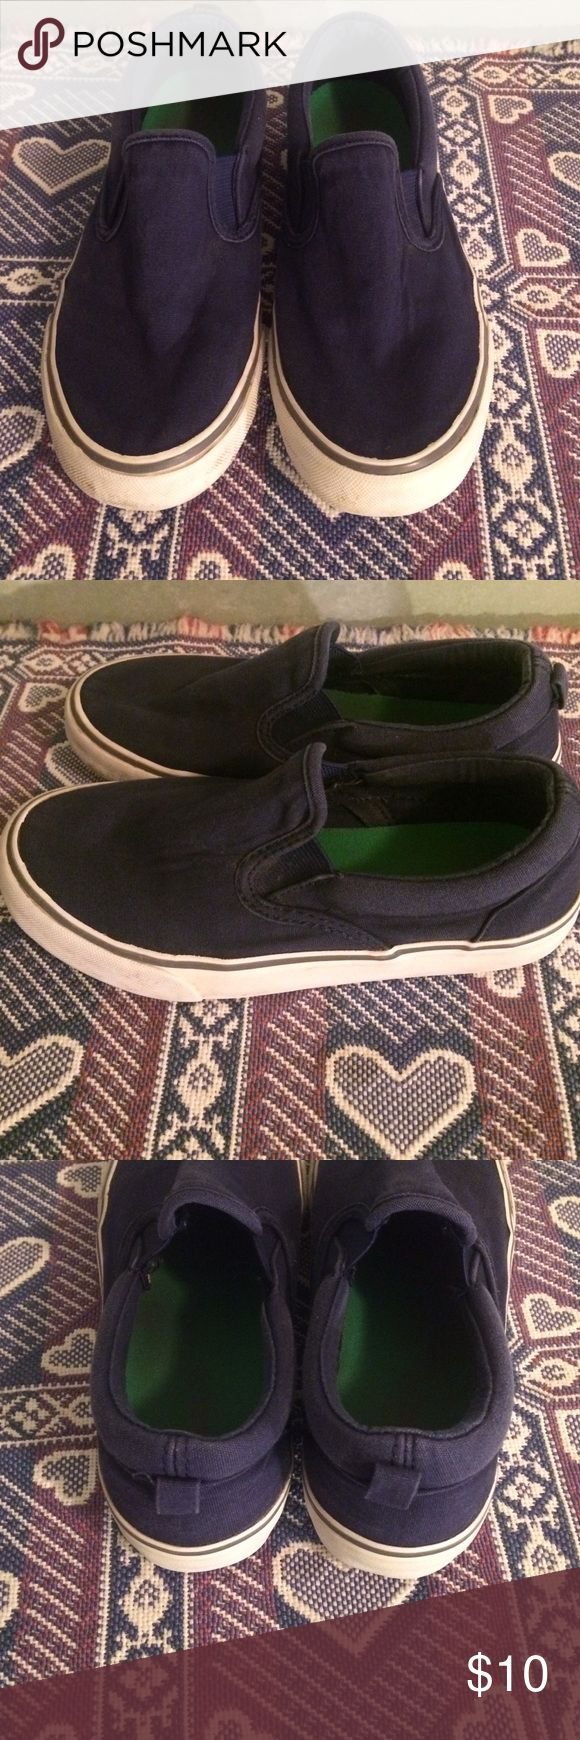 Old Navy boys shoes Navy blue color , canvas , shows some were but still really good shape , boys size 1 Old Navy Shoes Dress Shoes